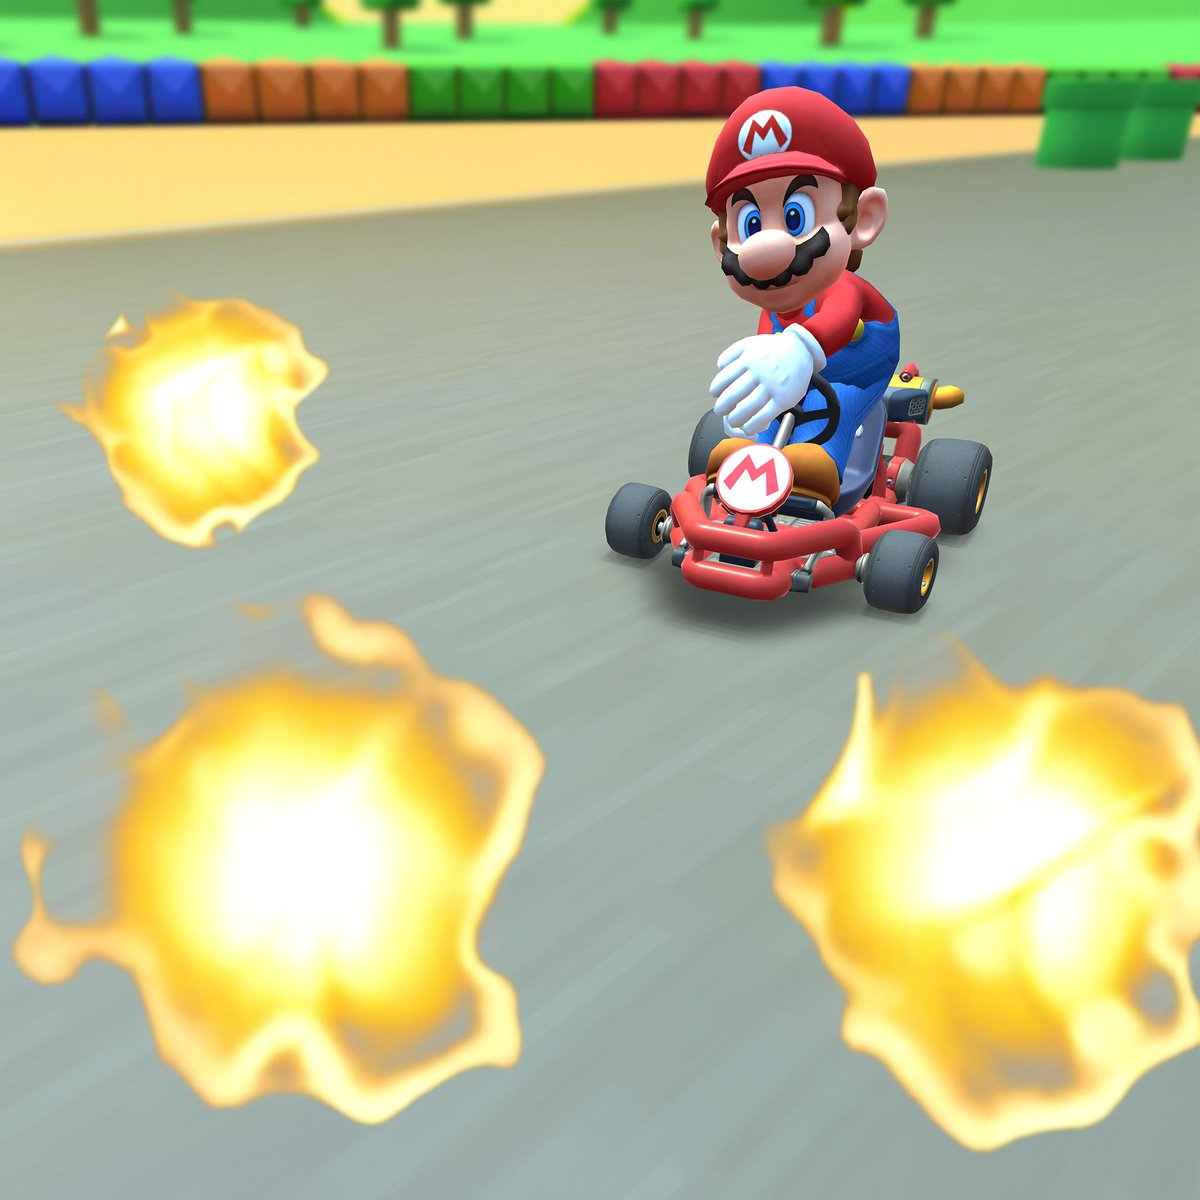 Mario Kart Tour On Twitter Certain Special Items From